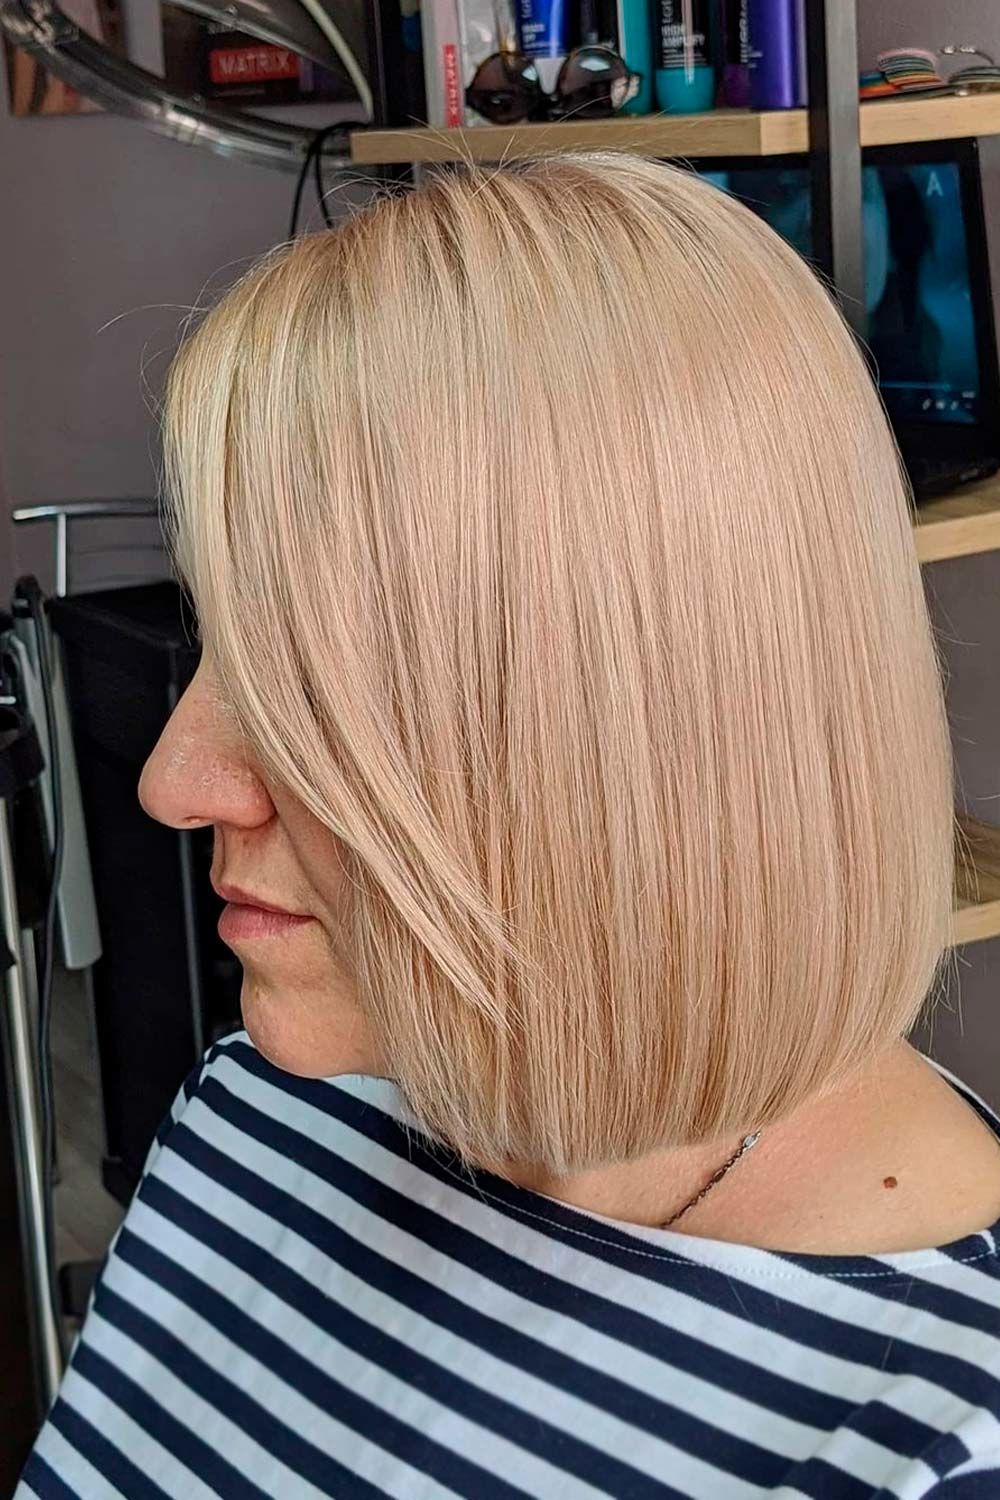 Straight Blonde Bob, haircuts for women over 40, hairstyles for black women over 40, hairstyles for plus size women over 40